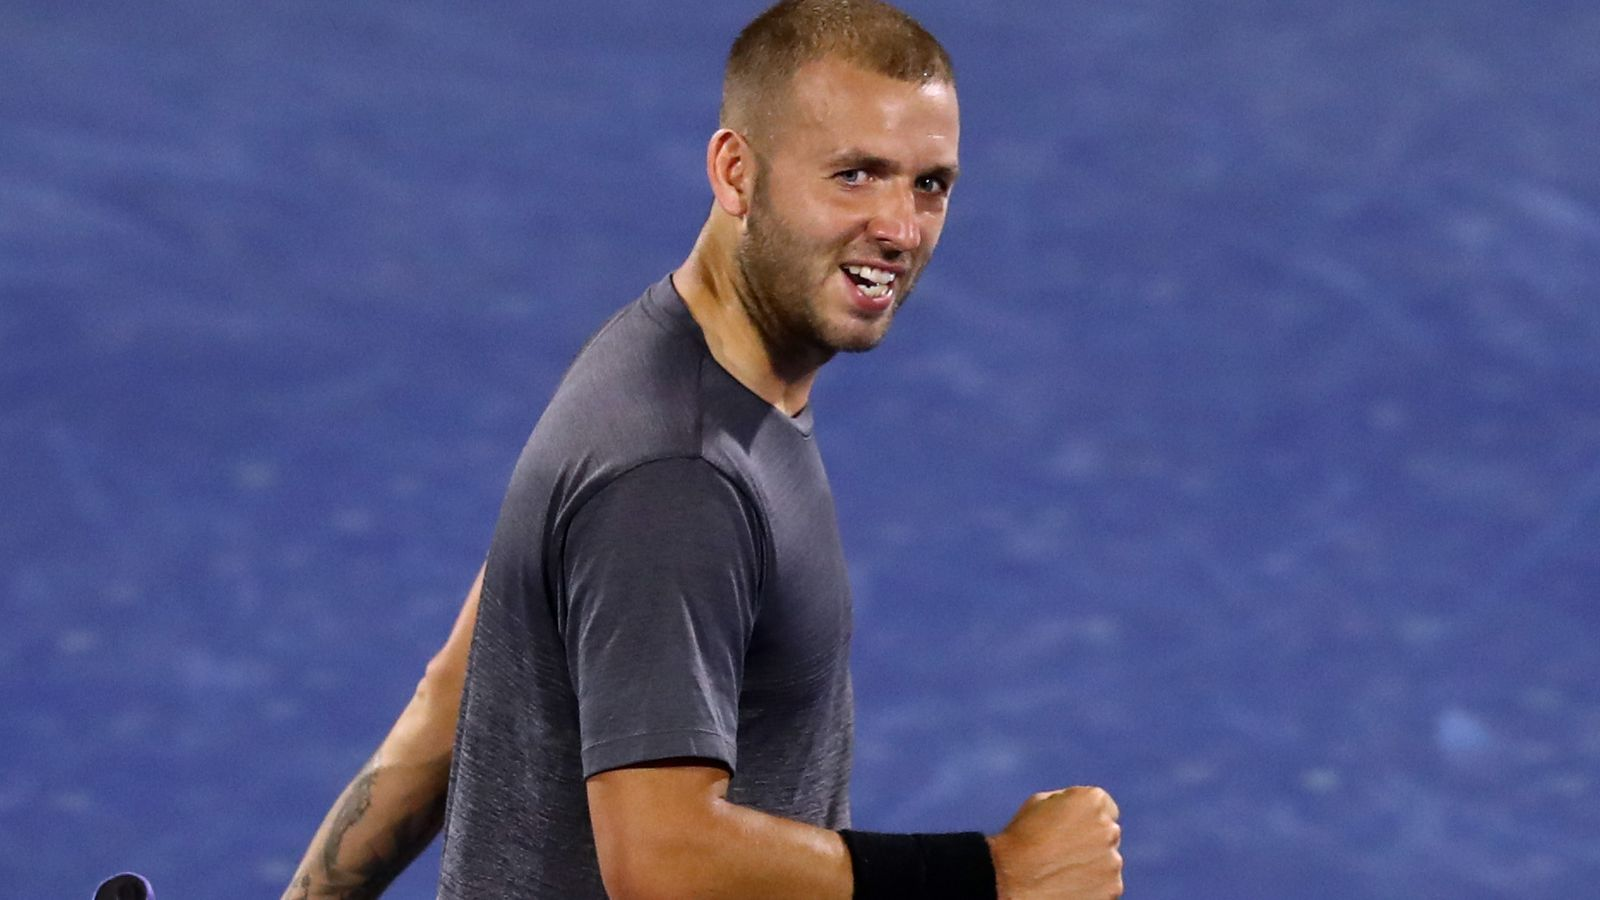 Dan Evans beats Fabio Fognini at the Dubai Duty Free Tennis Championships